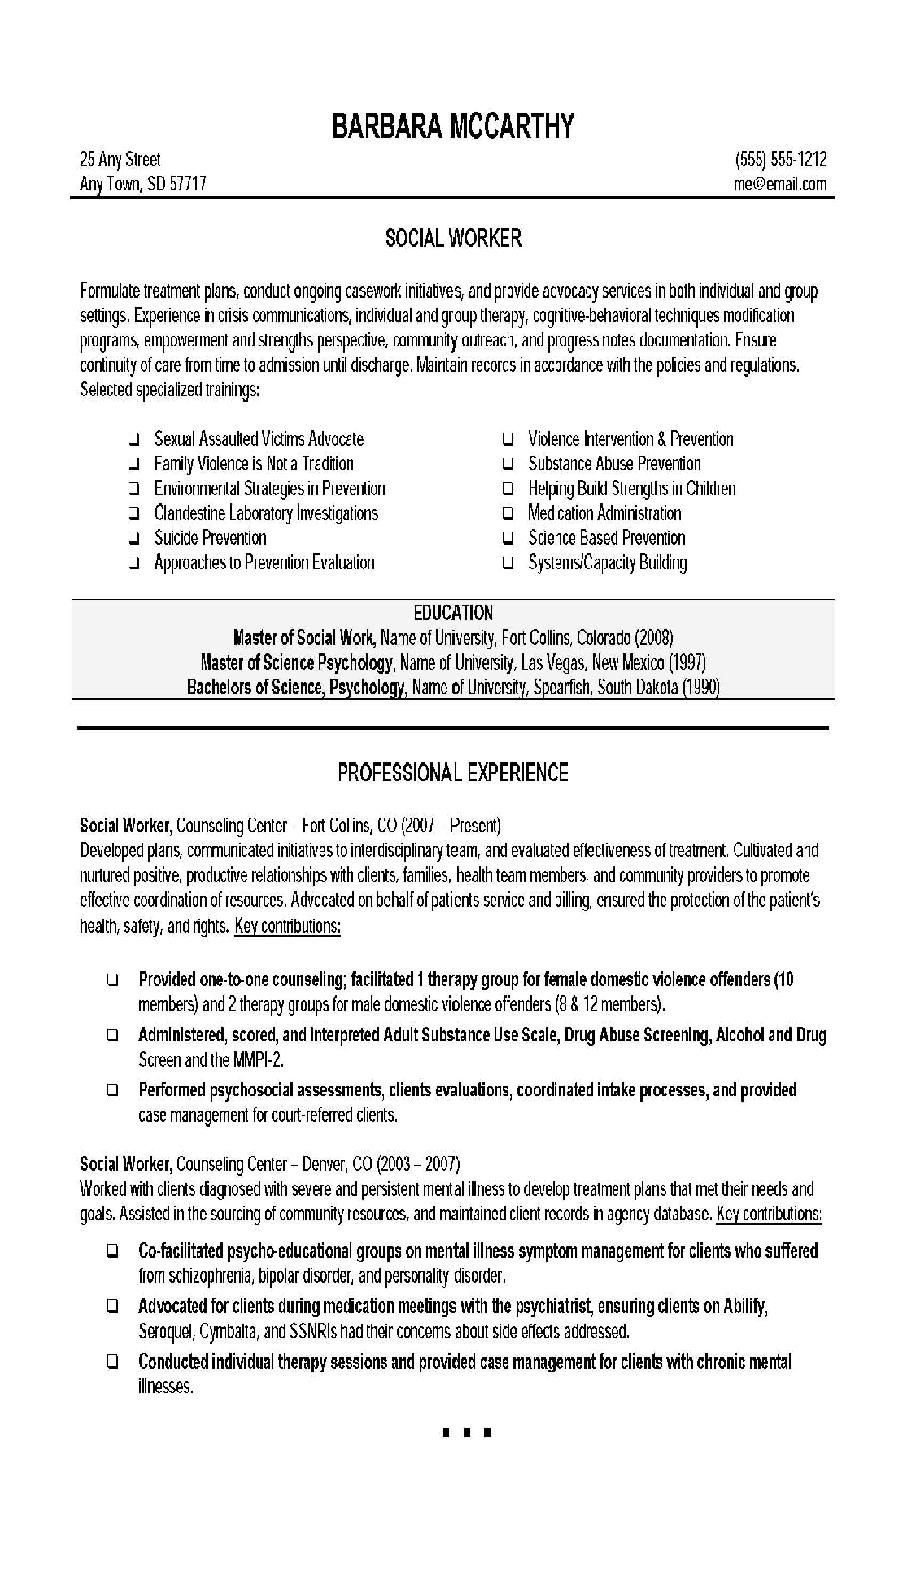 Social Worker Resume 4 Examples Work